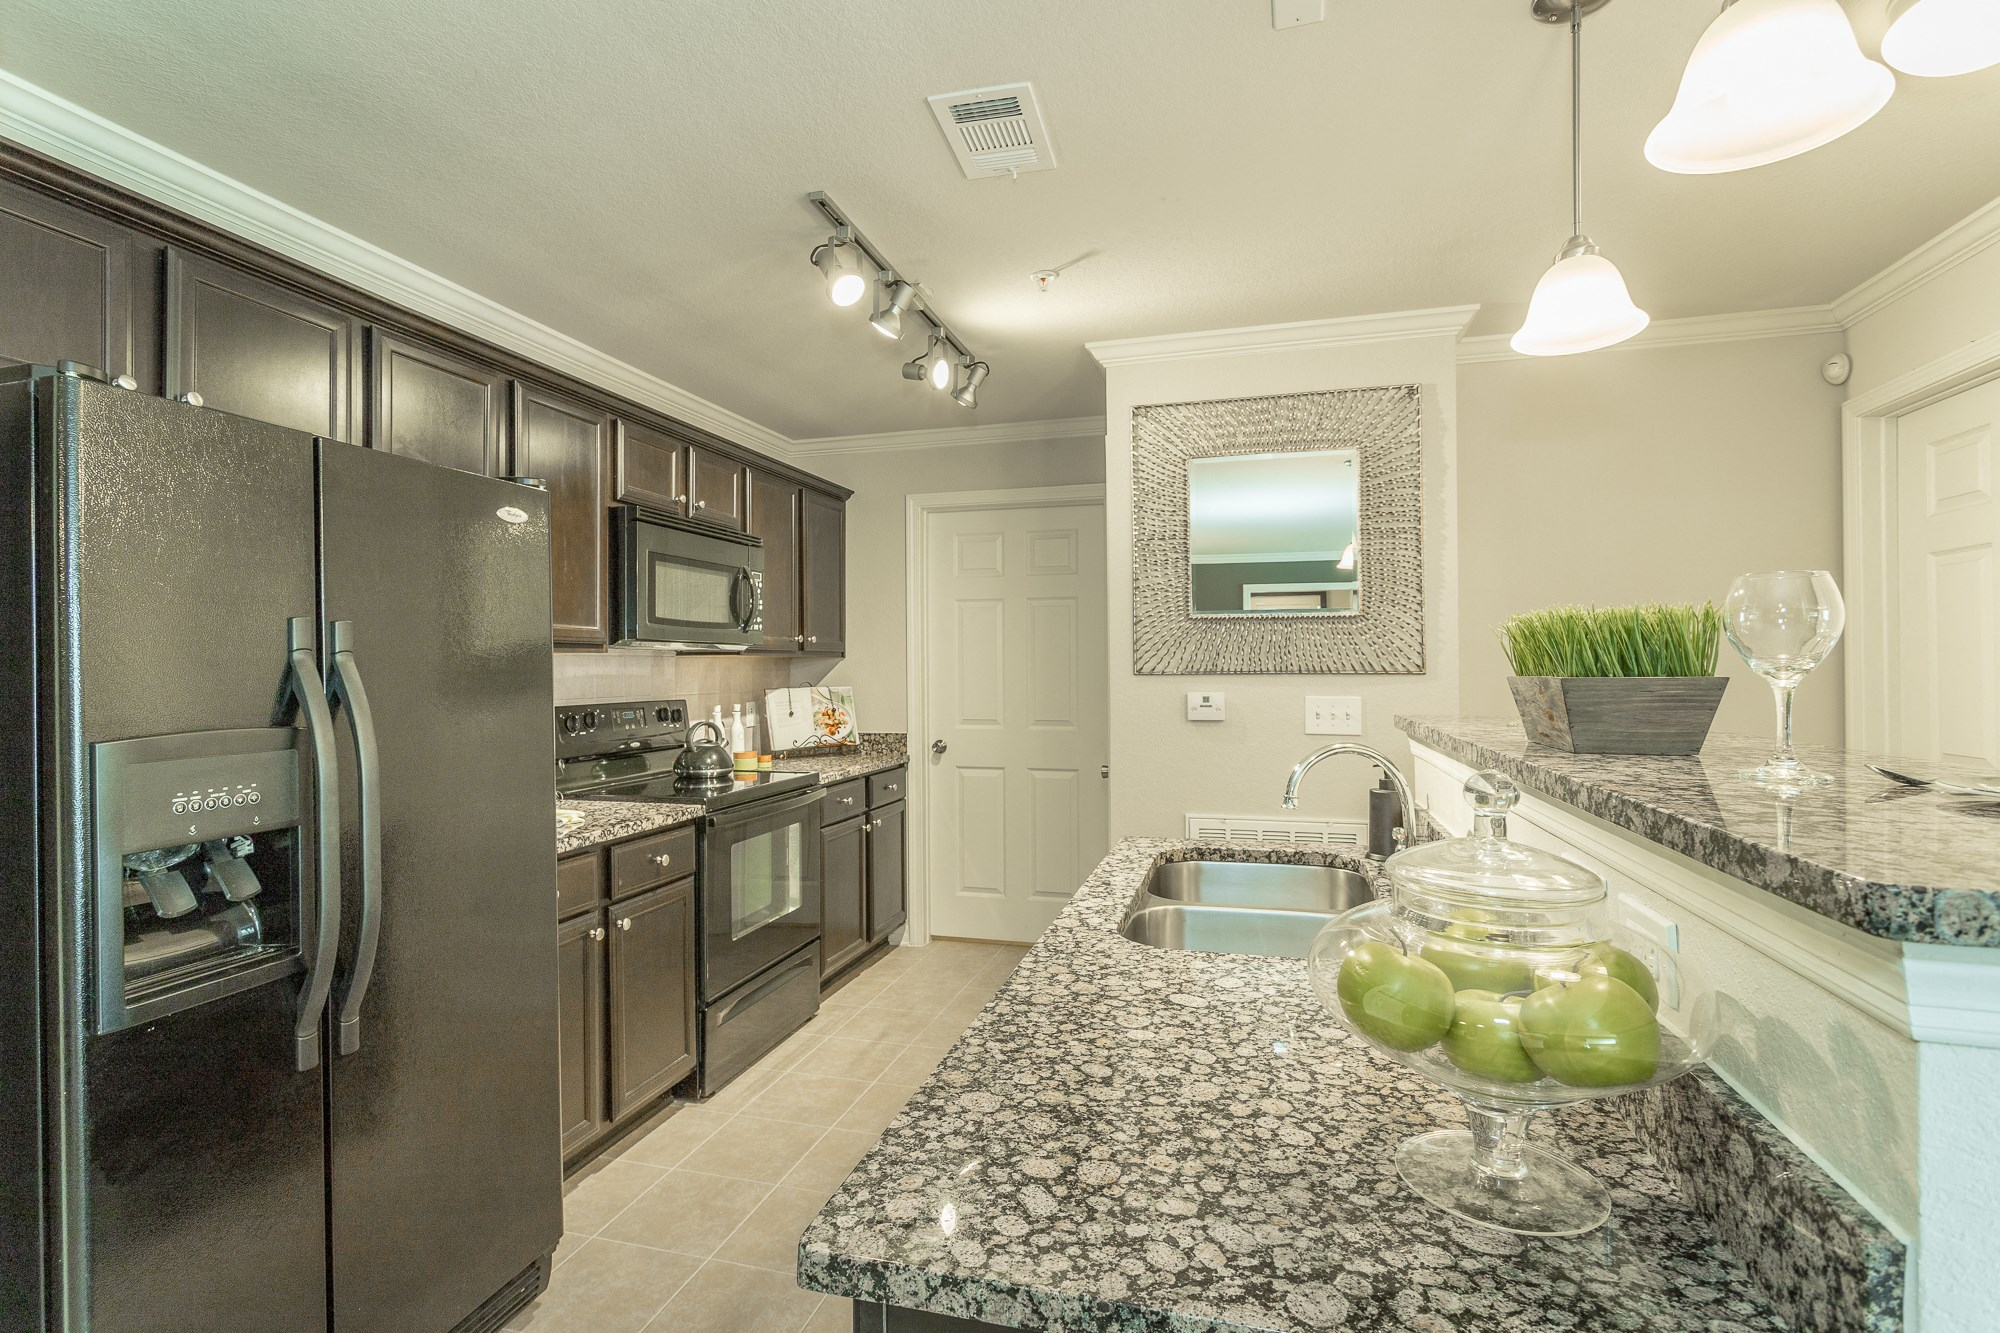 Beautiful kitchen with black energy efficient appliances and granite countertops at Amberleigh Ridge